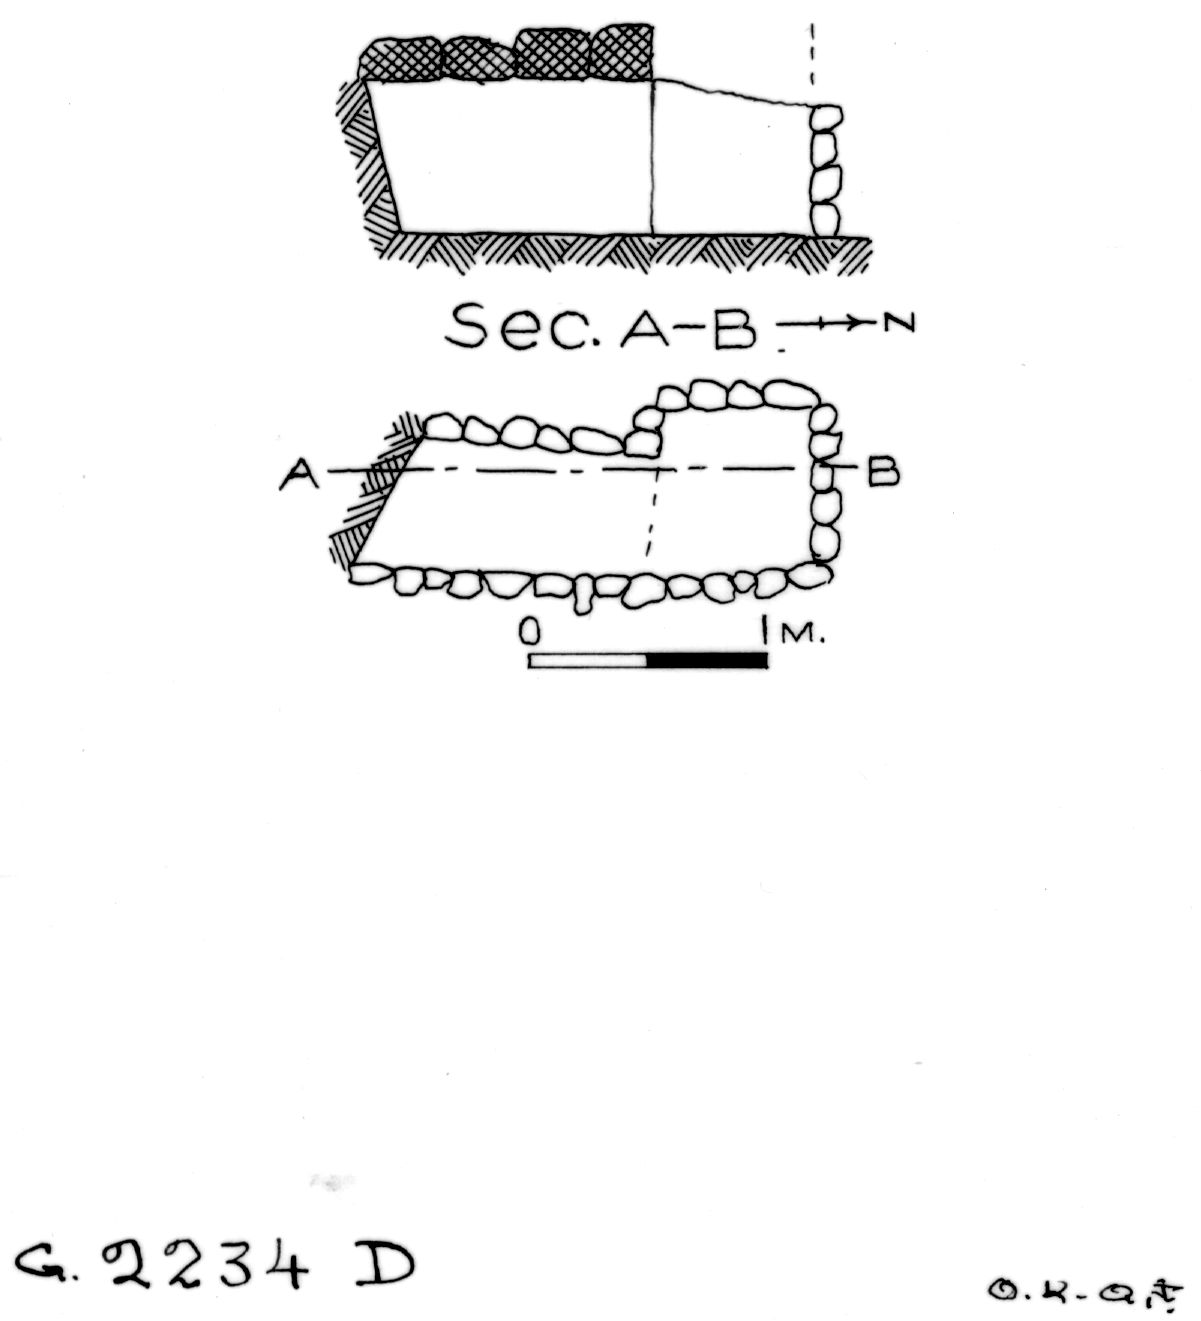 Maps and plans: G 2234, Shaft D